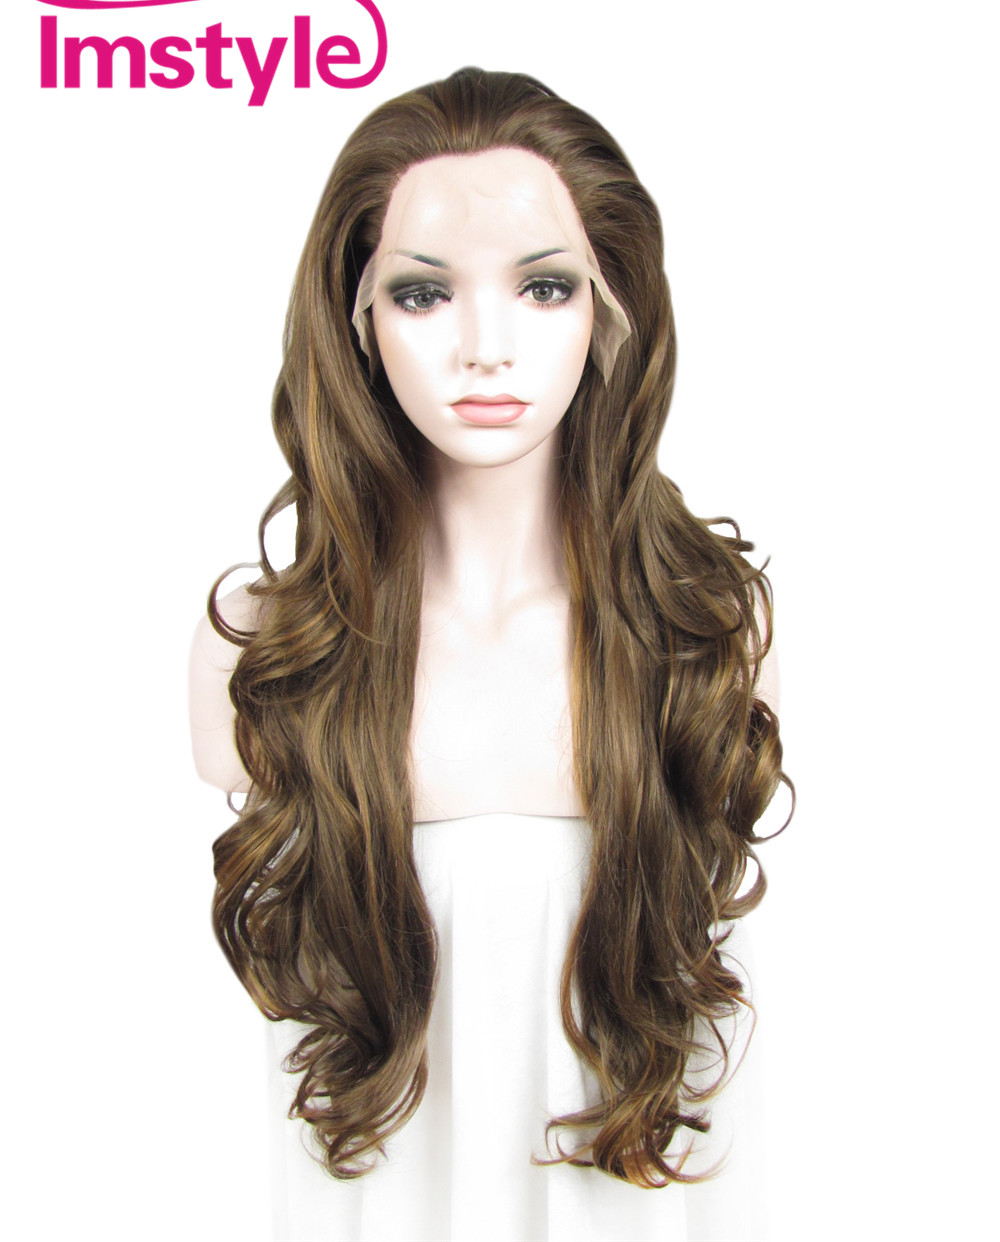 Imstyle Wavy Synthetic Light Chestnut Brown Mixed Color 26